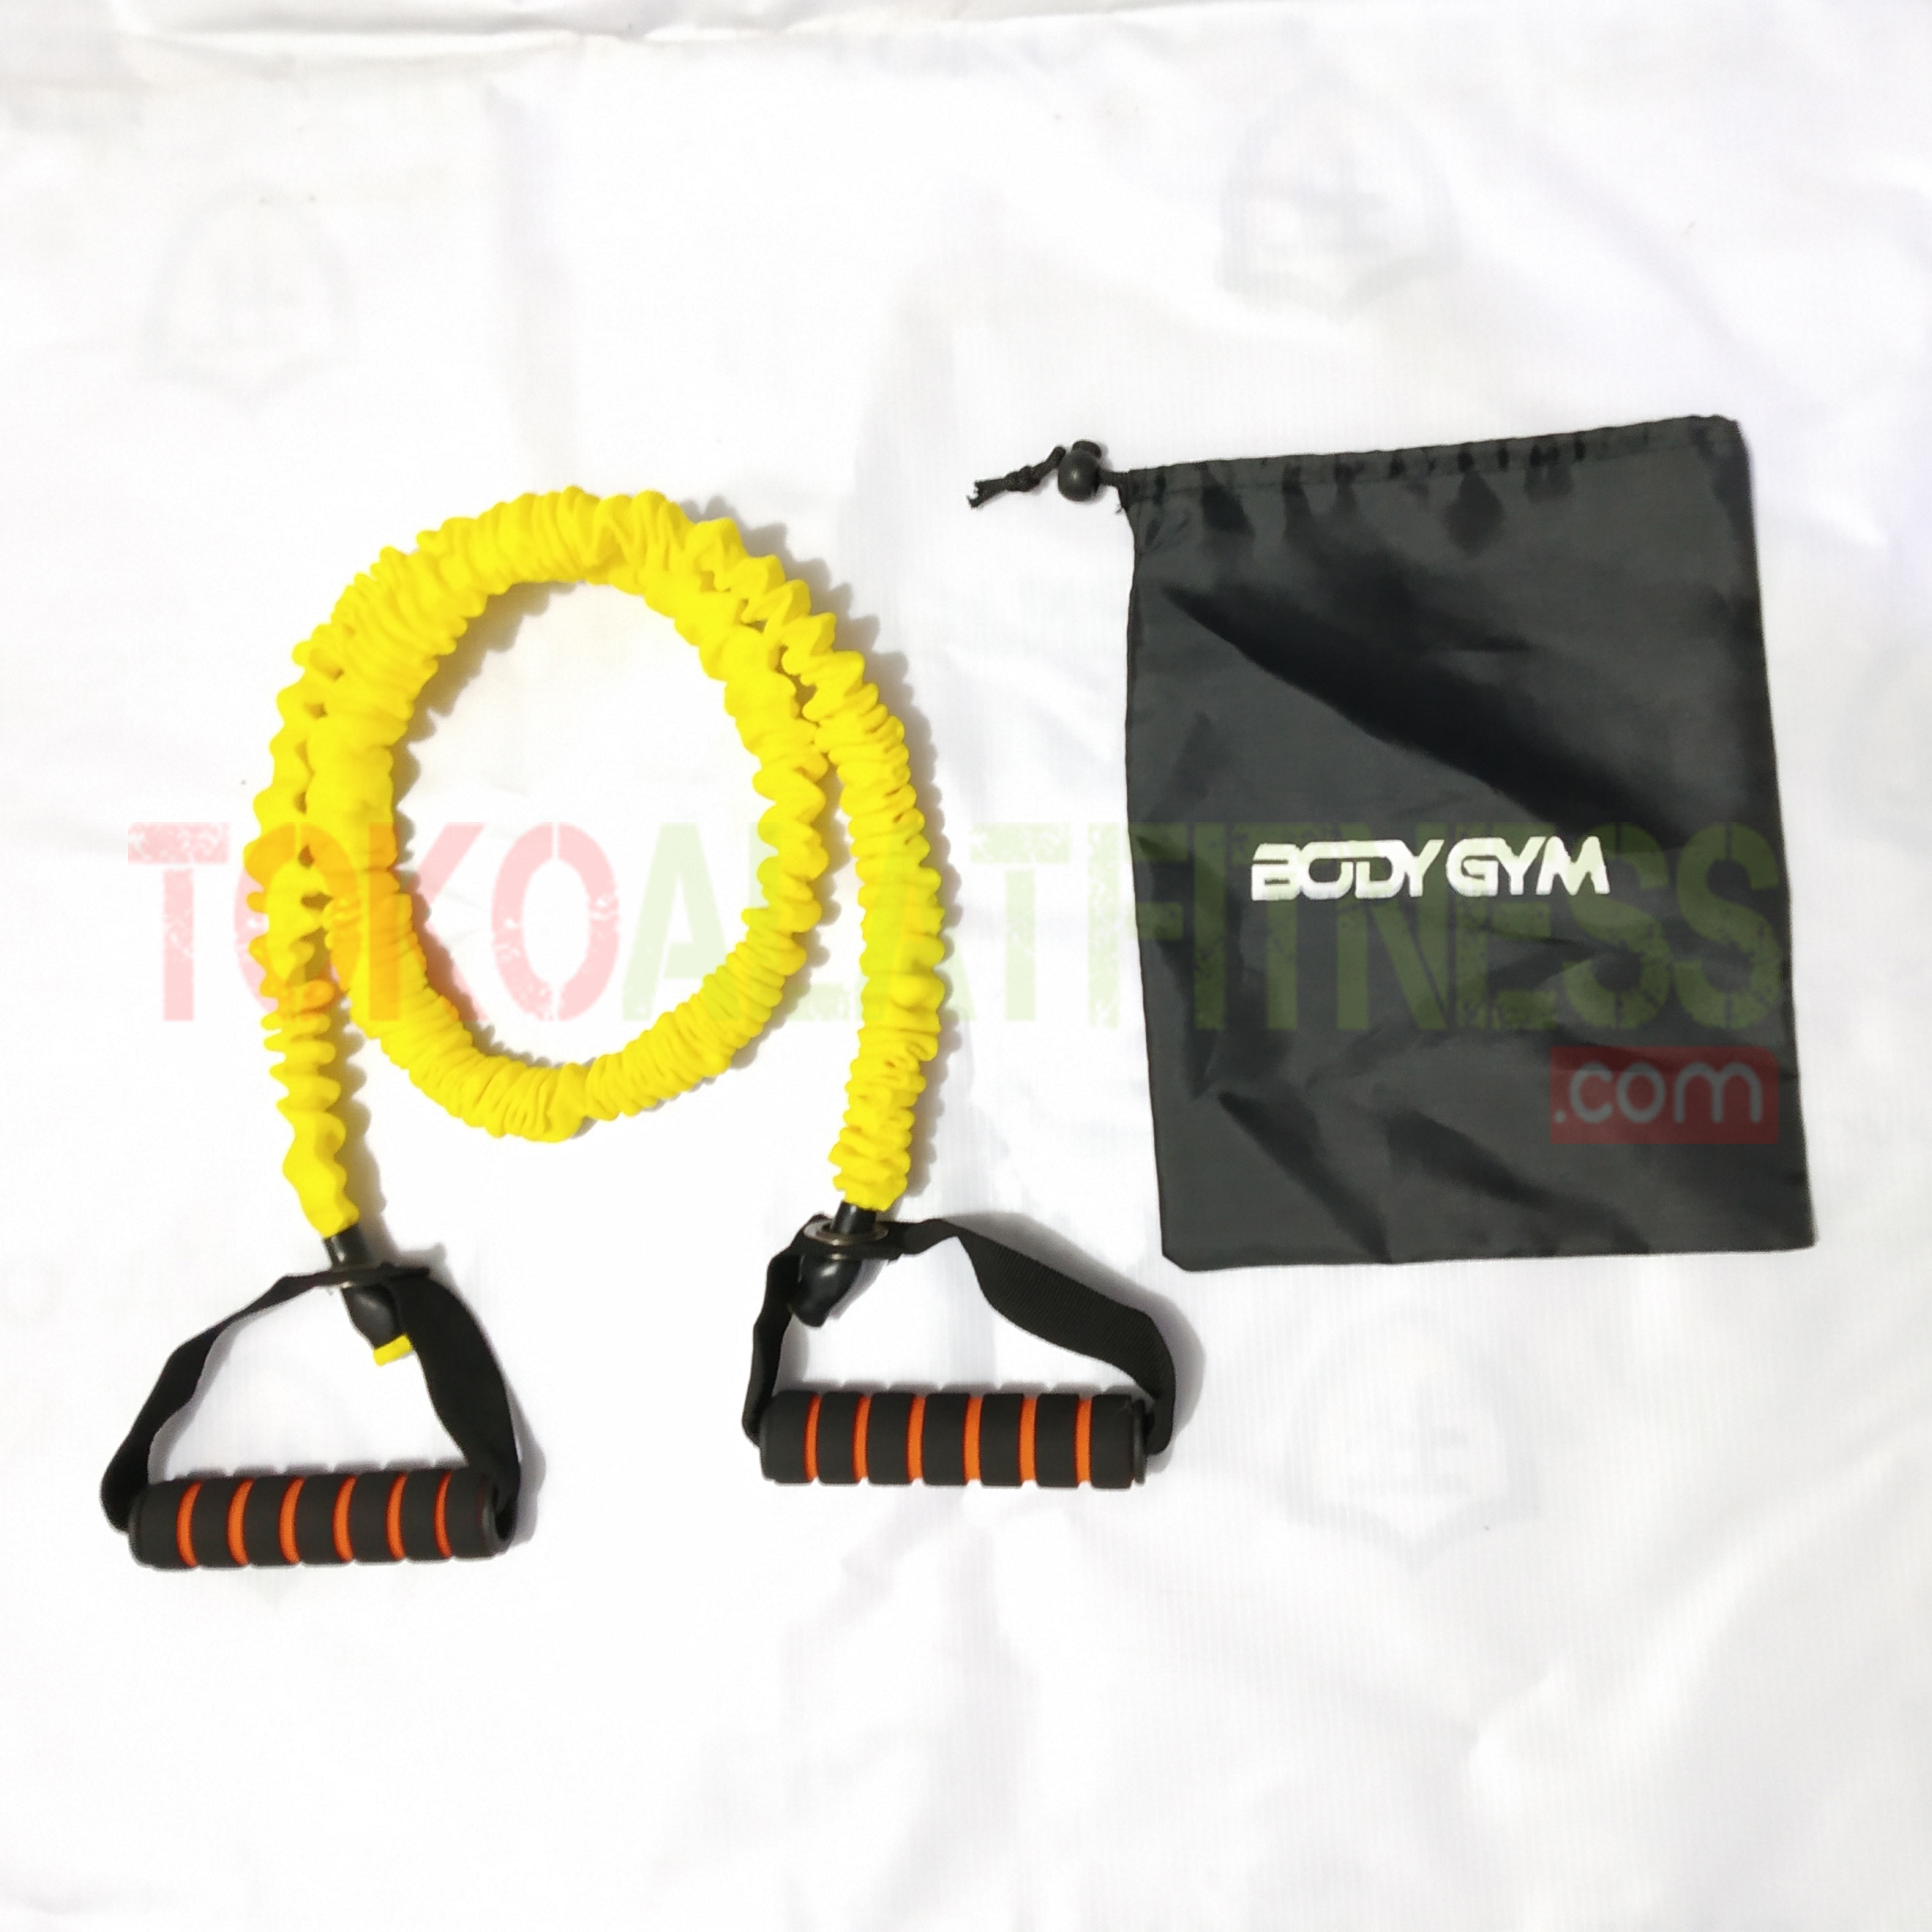 PALL ROPE KUNING ORI 1WTM - Resistance Band / Strap with Handle Kuning 15 Lbs Body Gym - ASSRB18